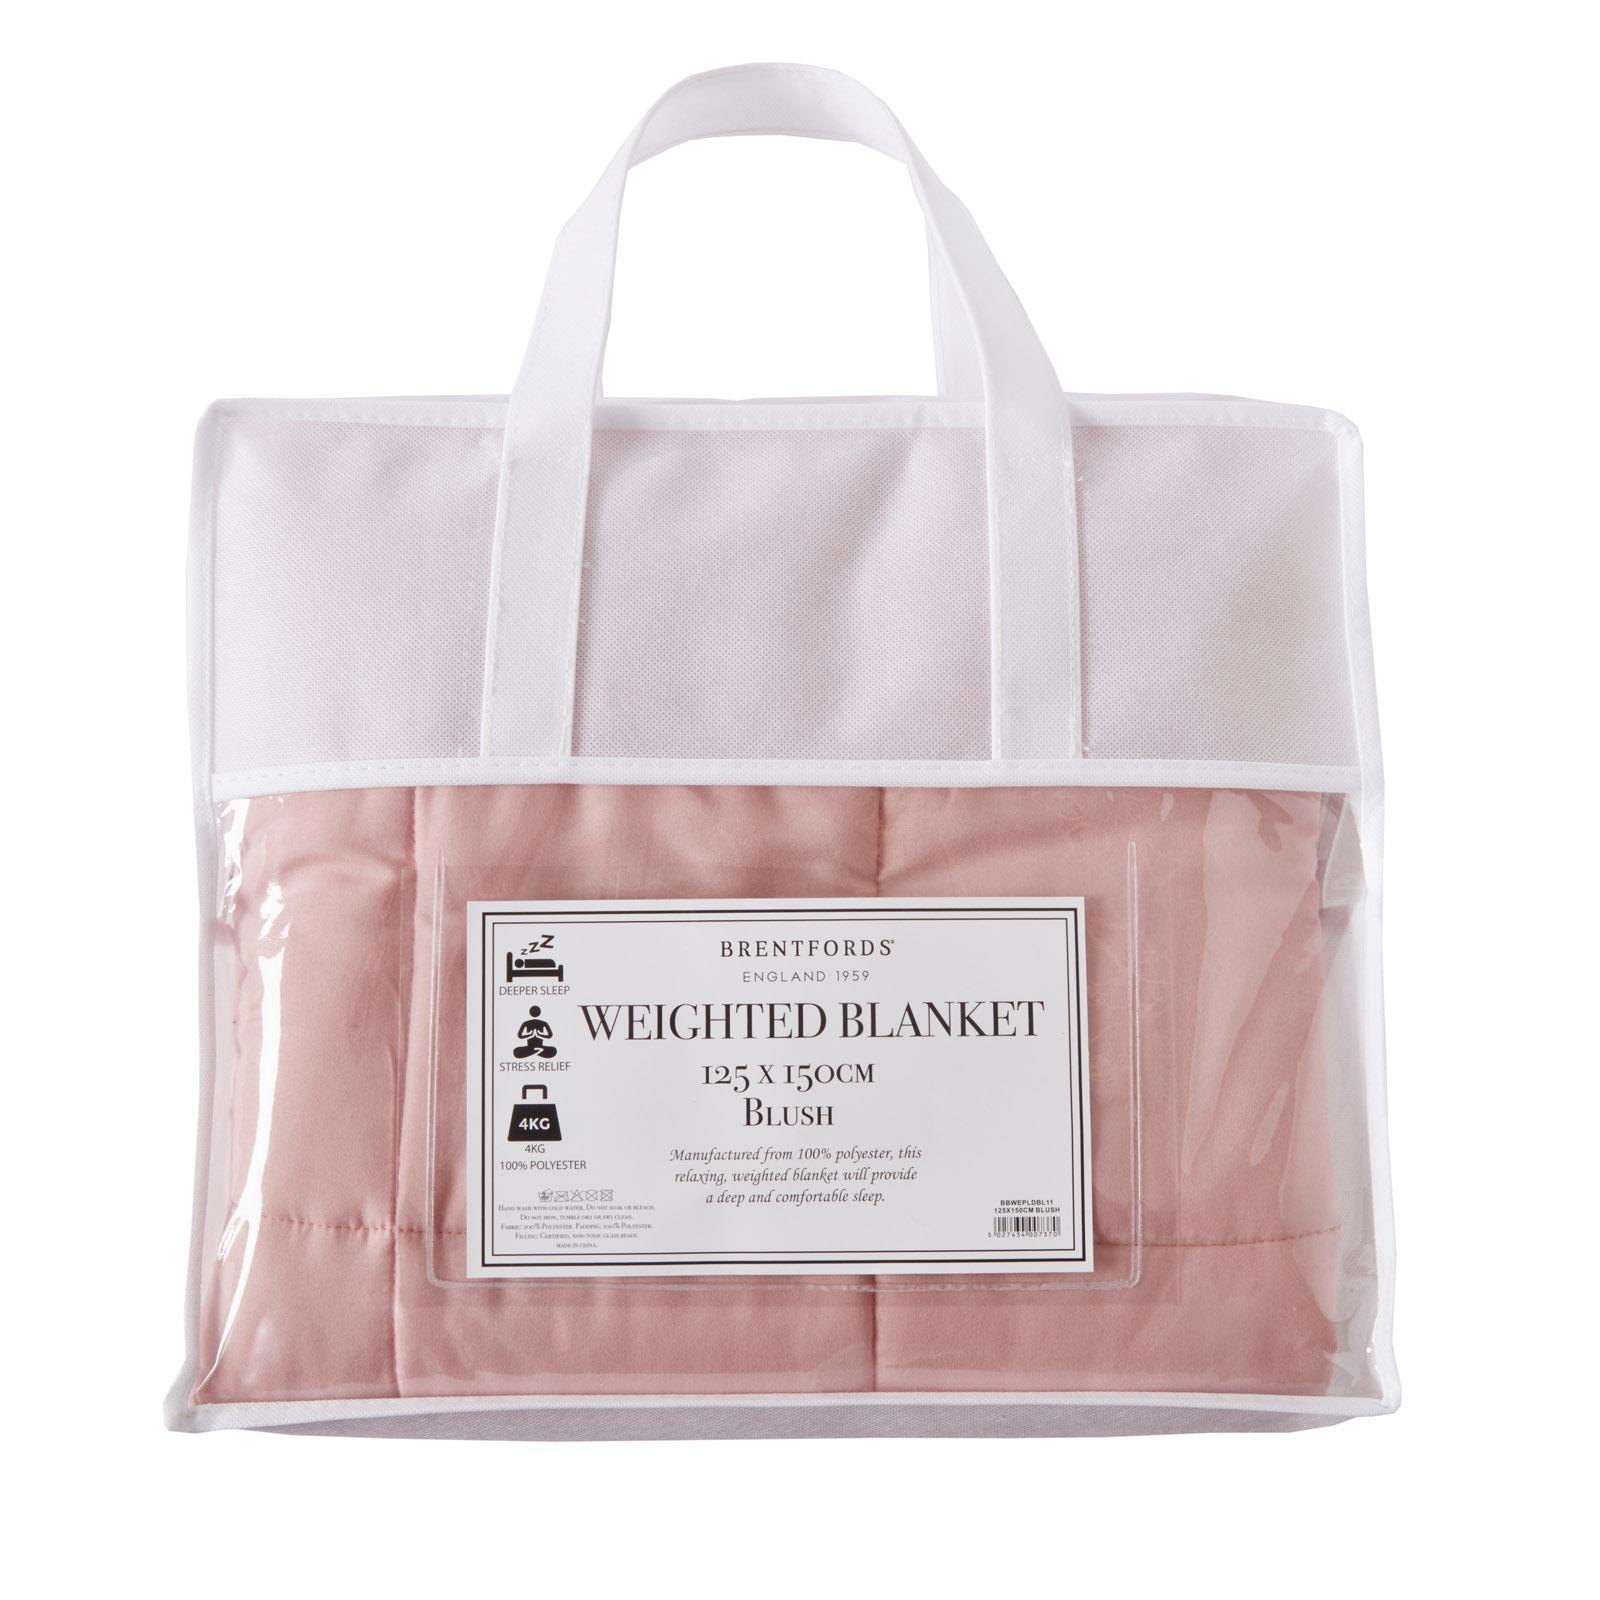 Brentfords-Weighted-Blanket-Sensory-Sleep-Therapy-Anxiety-Kids-Adults-Blush-Grey thumbnail 8